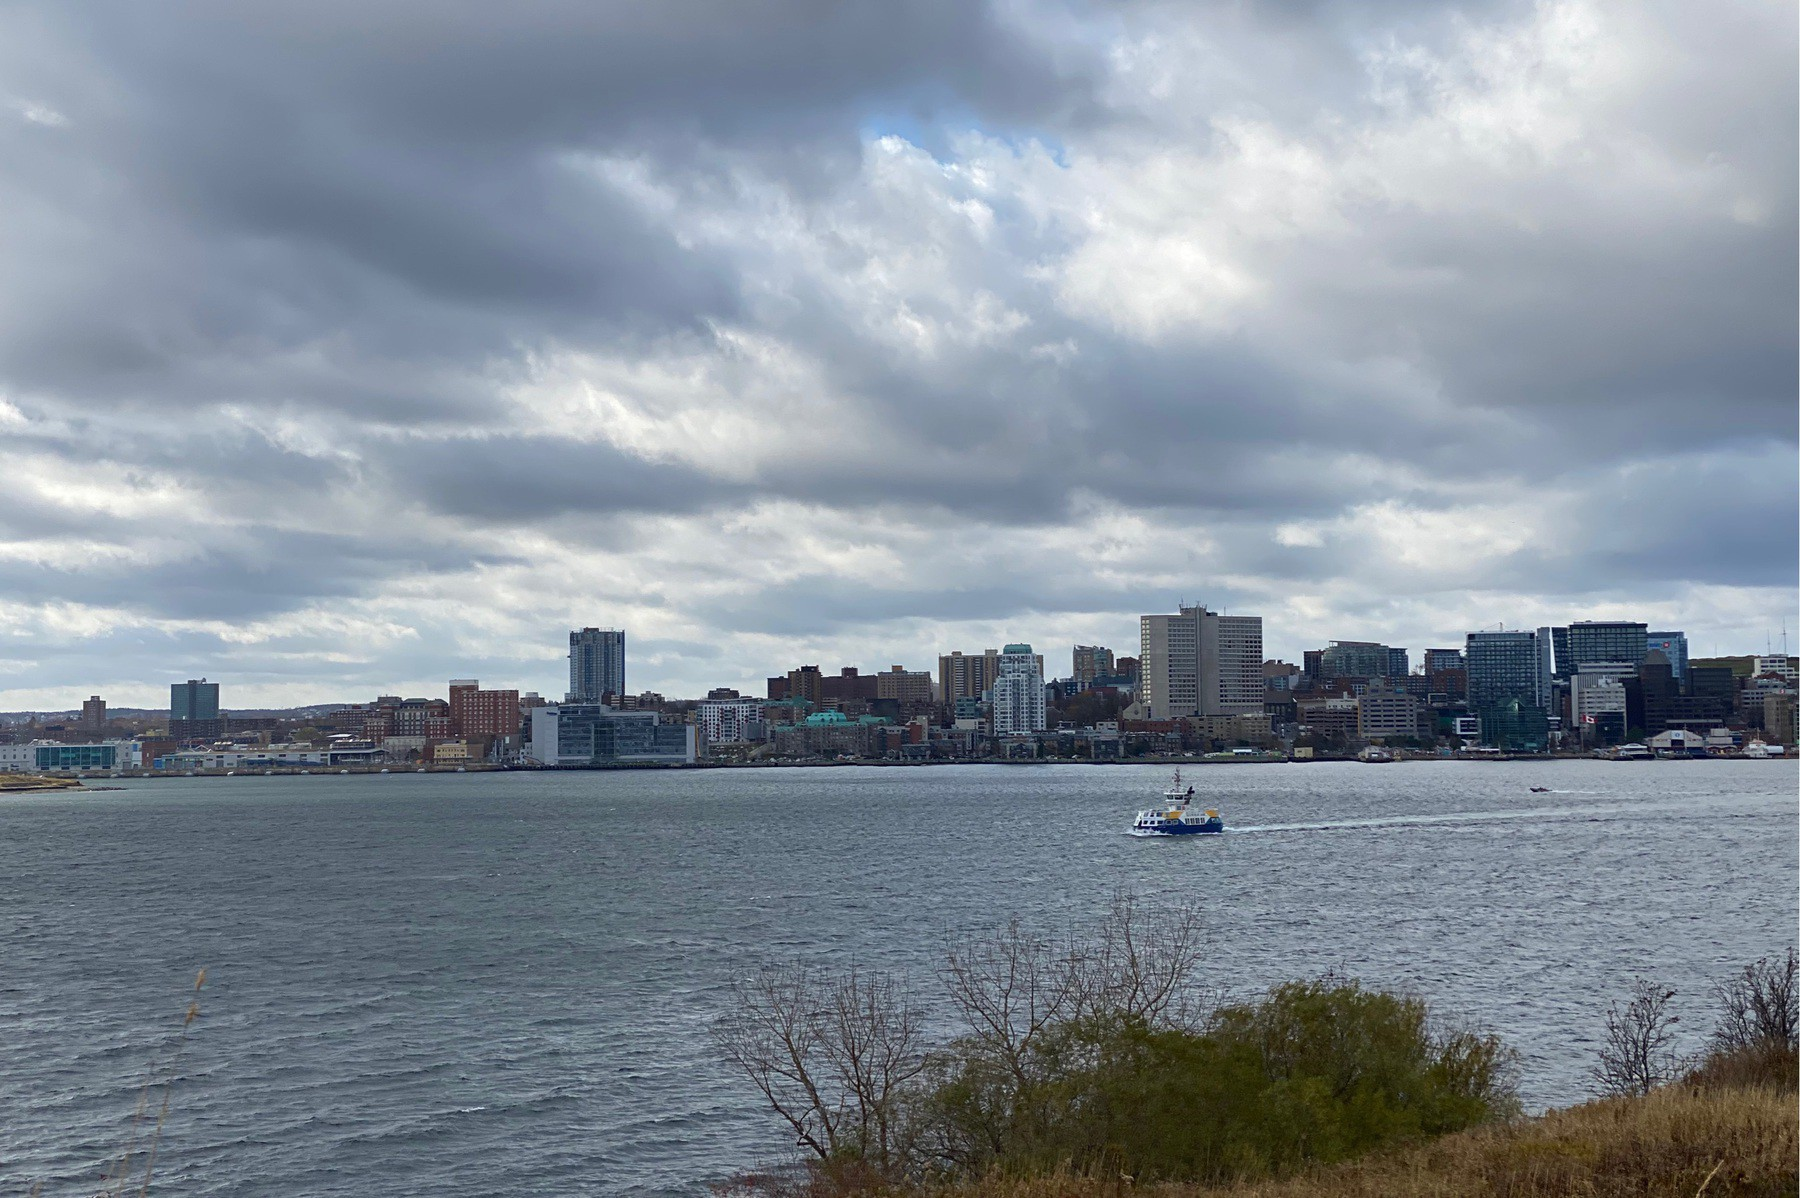 Clouds and ferry in Halifax harbour.